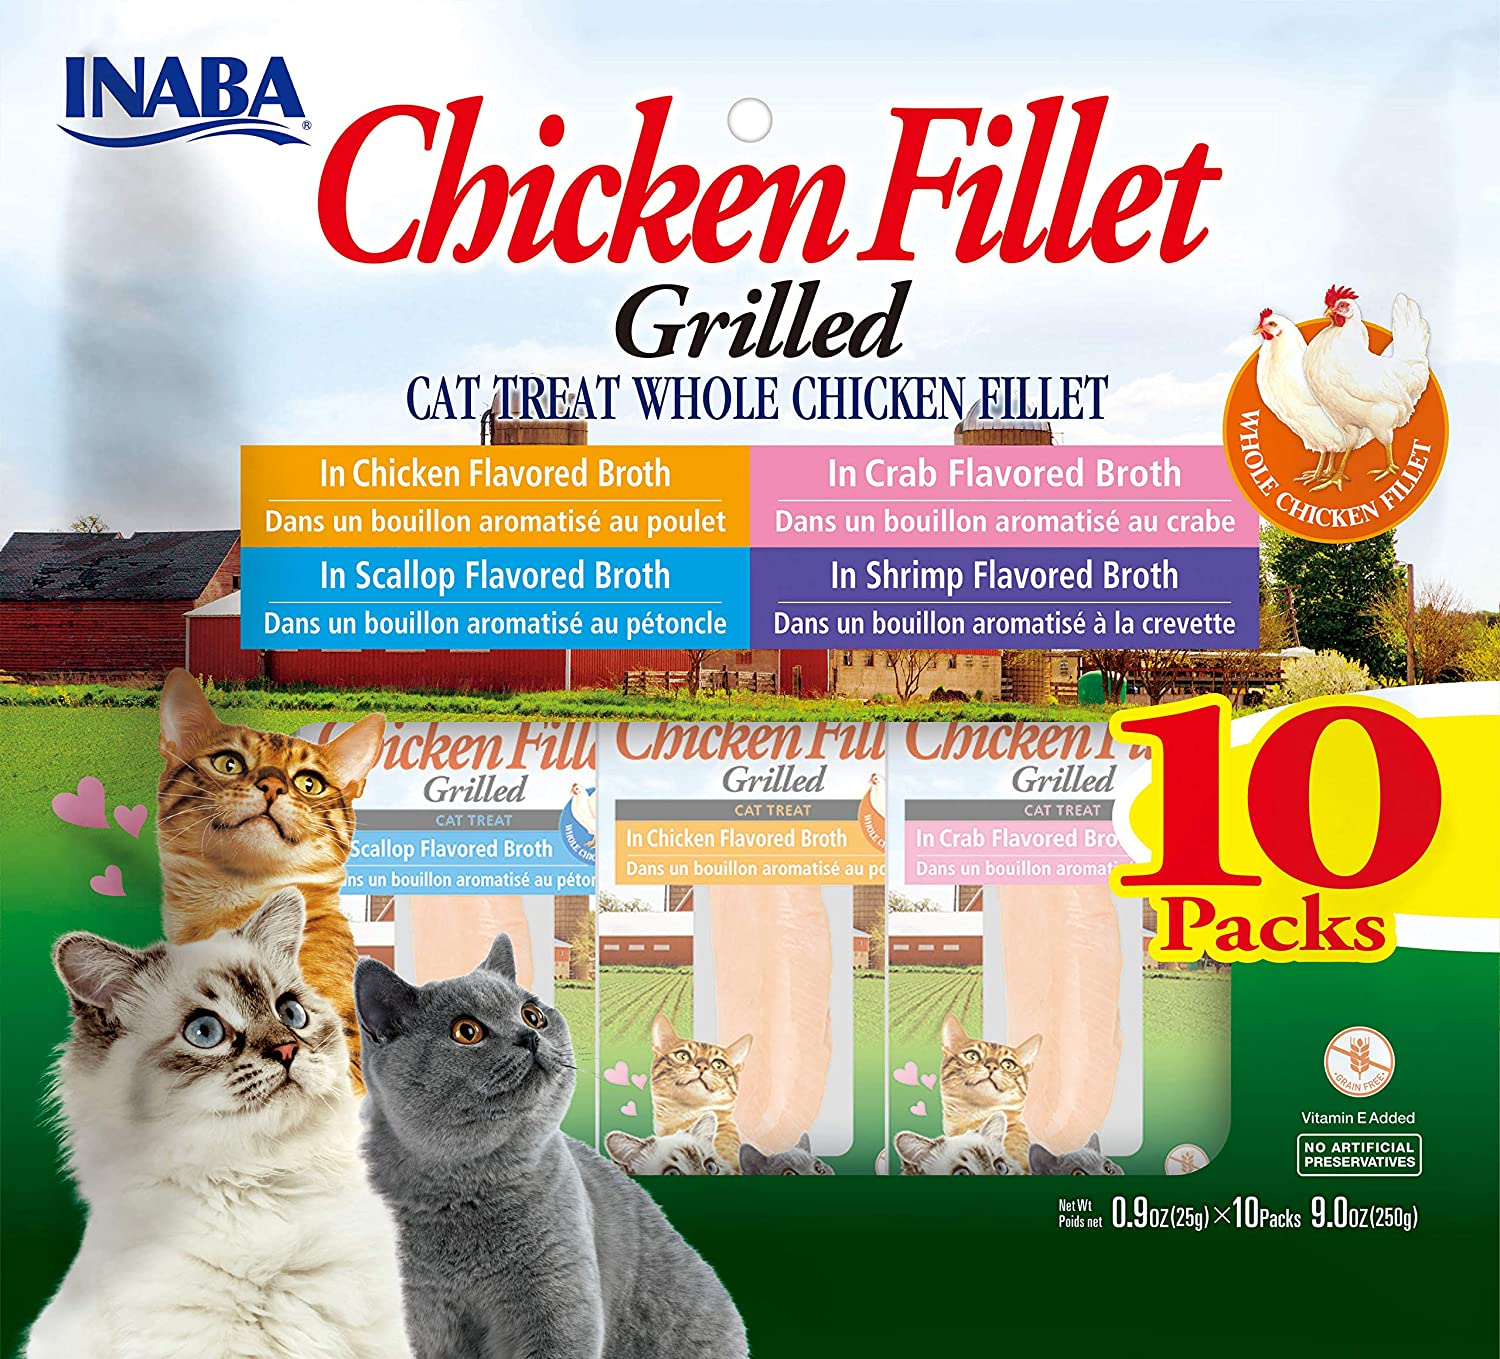 INABA Grilled Chicken Fillets in Savory Seafood Broth Cat Treat 4 Variety 10 Pack